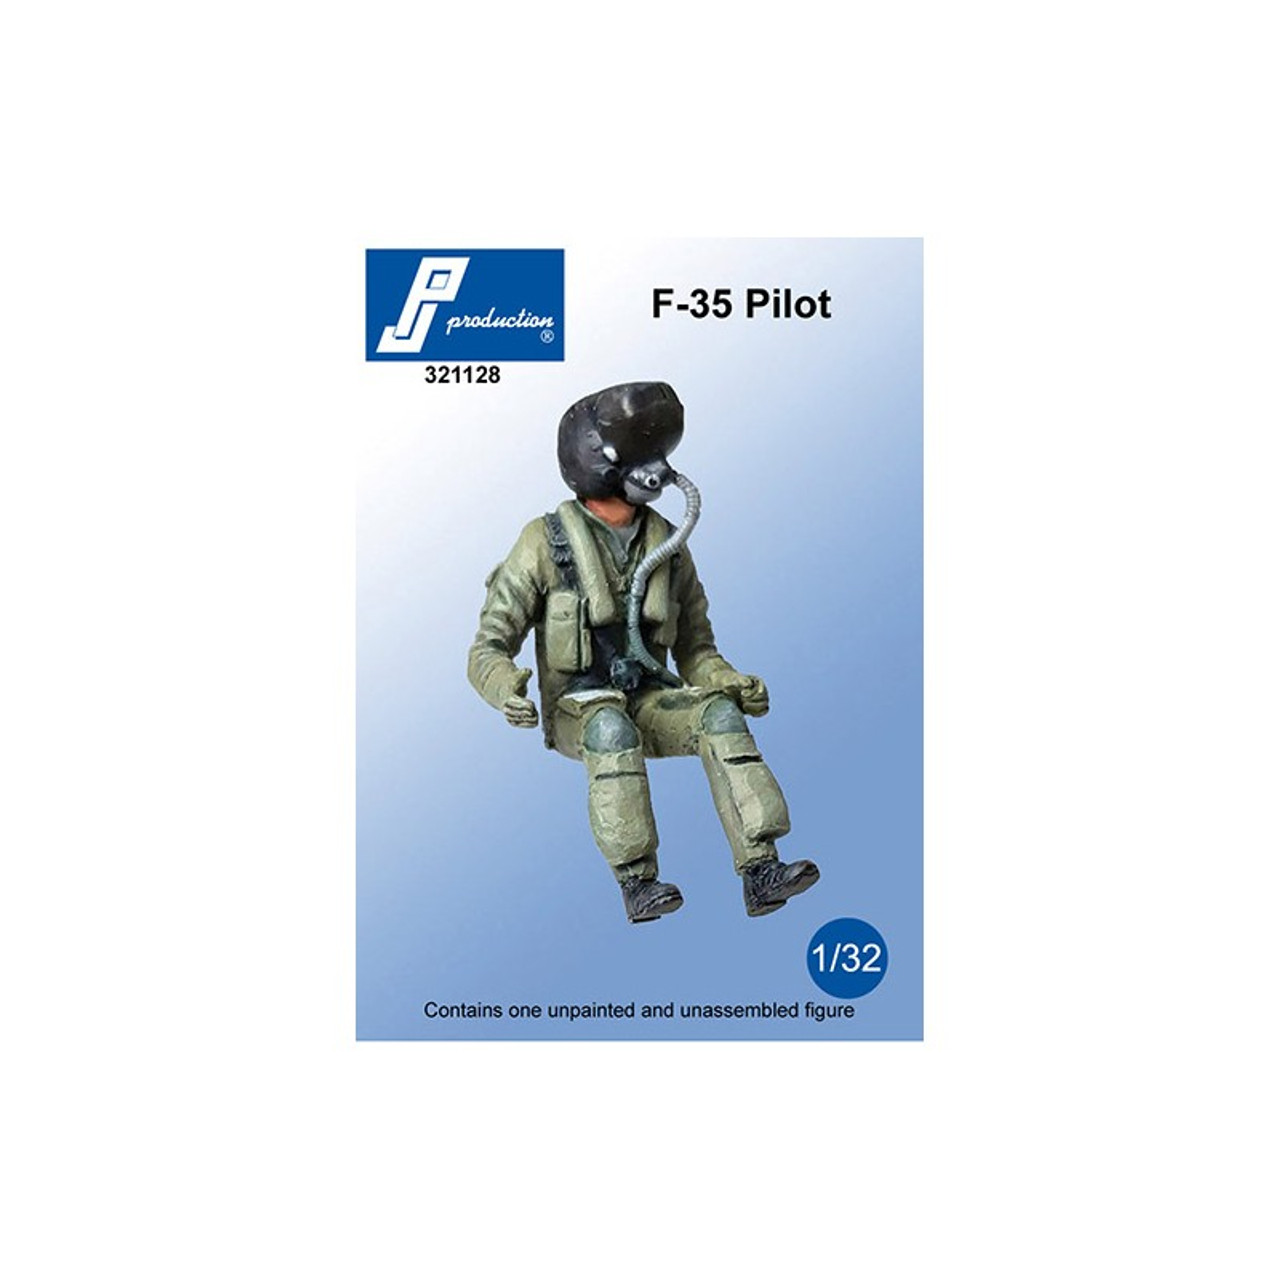 PJ Productions F-35 Pilot seated in aircraft Figure 1:32 (PJP321128)